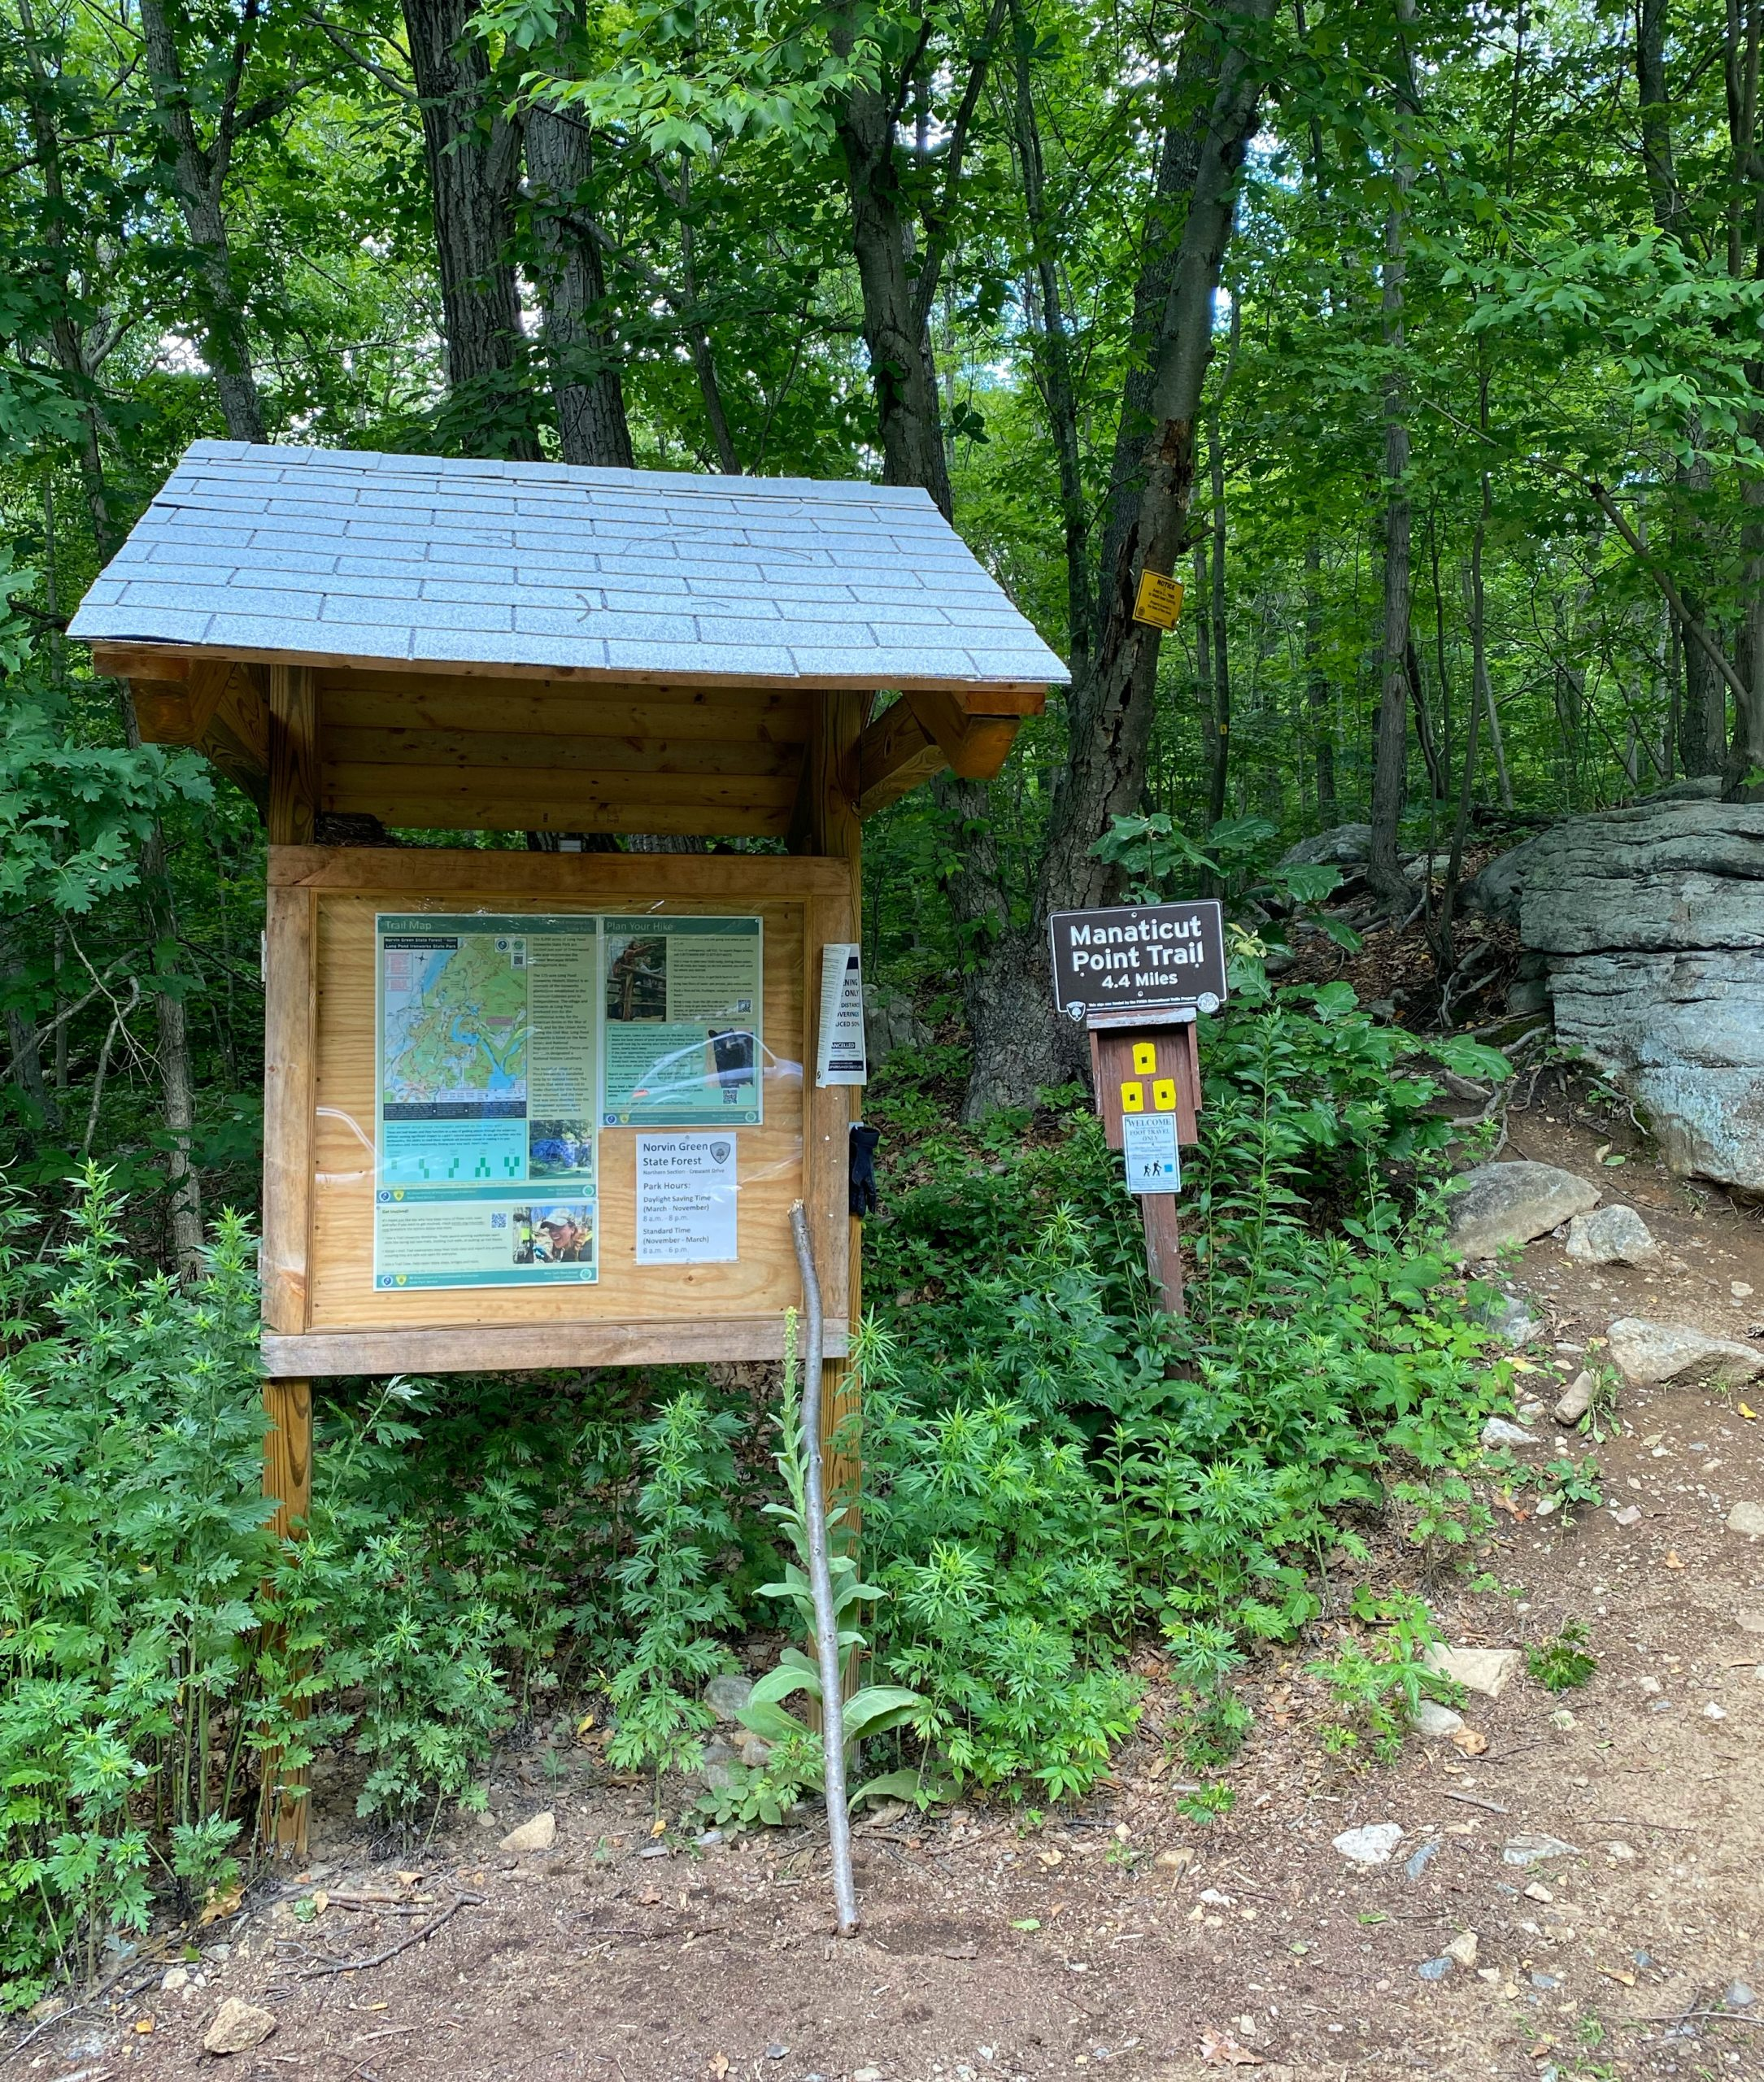 Manaticut Point Trailhead Kiosk